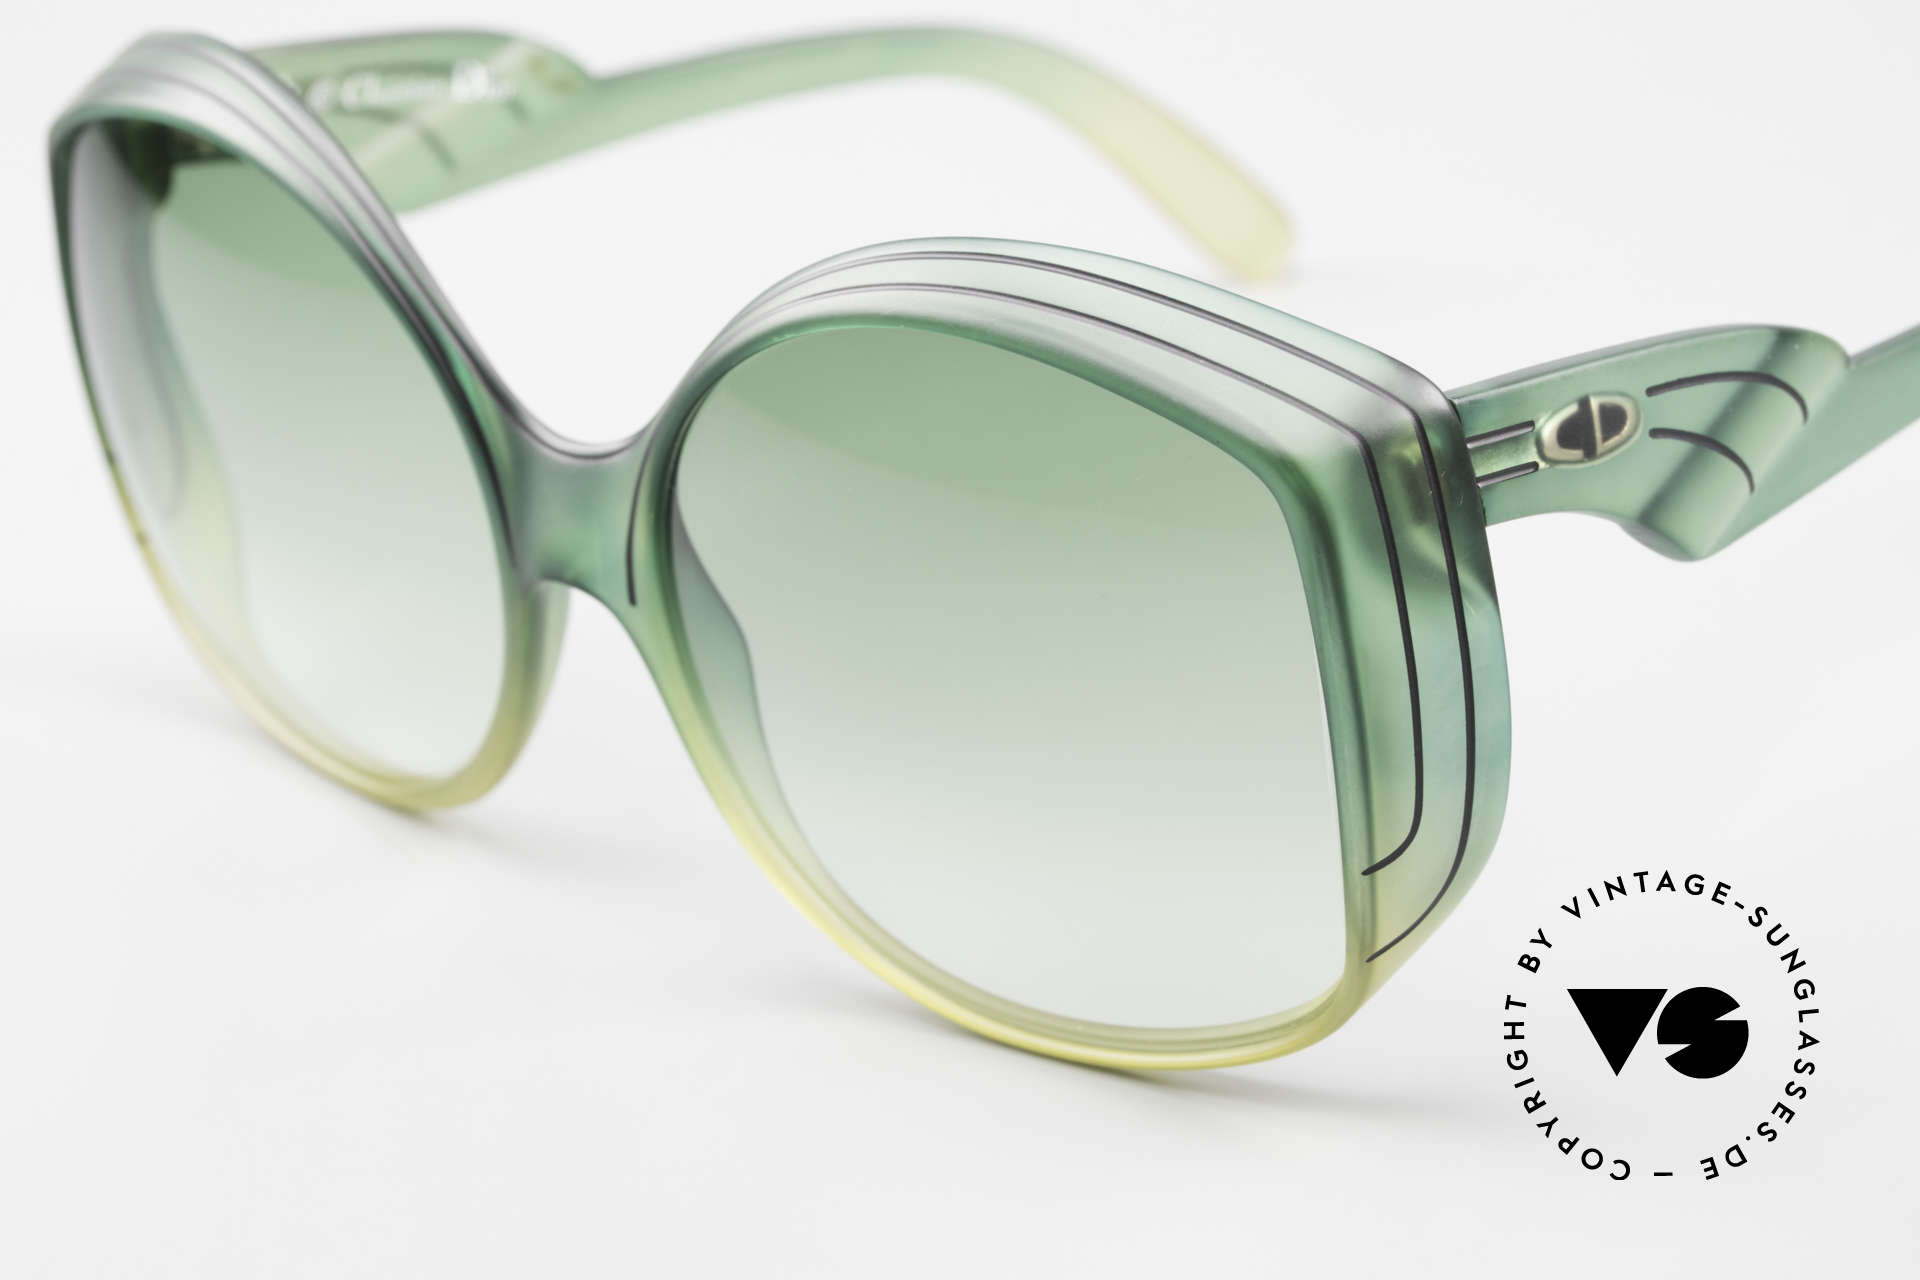 Christian Dior 2041 XXL 1970's Ladies Sunglasses, made of unbelievable Optyl material with 'mystic effect', Made for Women